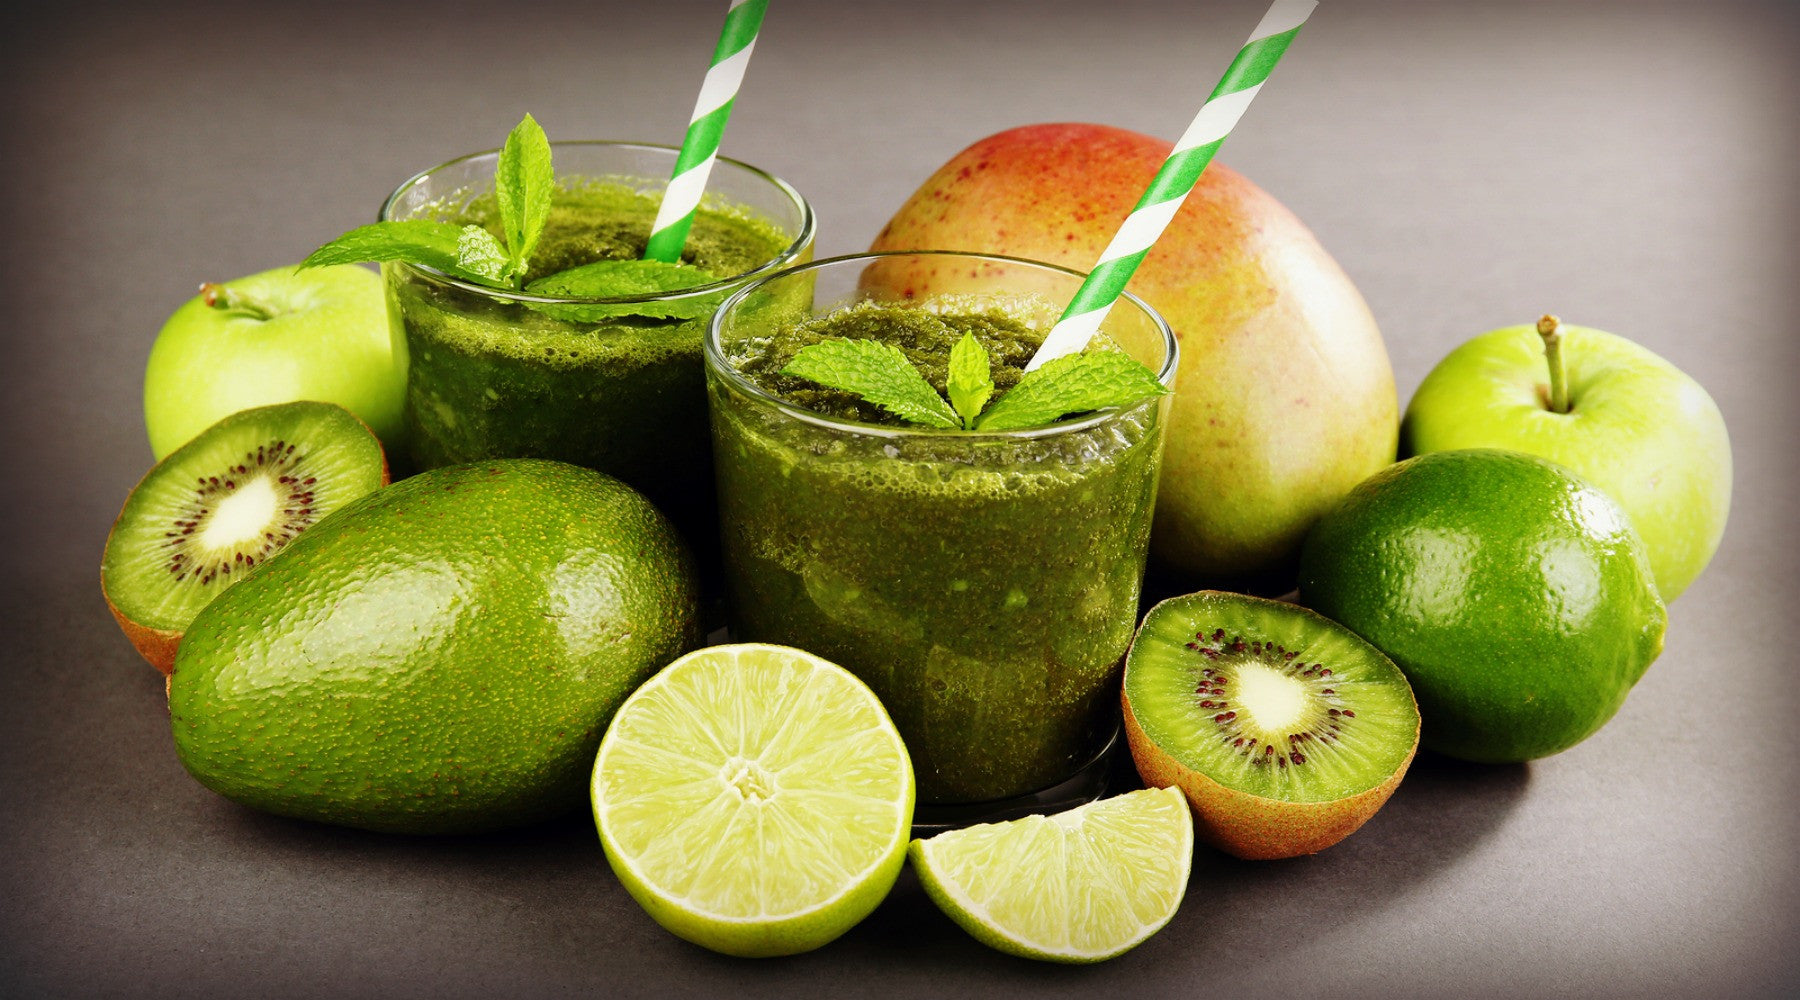 Mango avocado lime smoothie